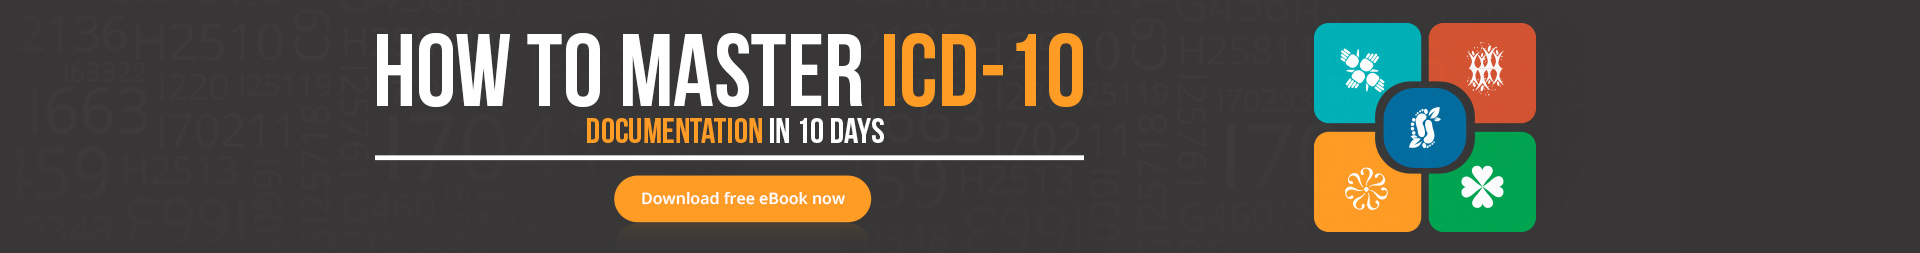 Icd 10 Training Resources For Physicians Curemd Knowledge Center